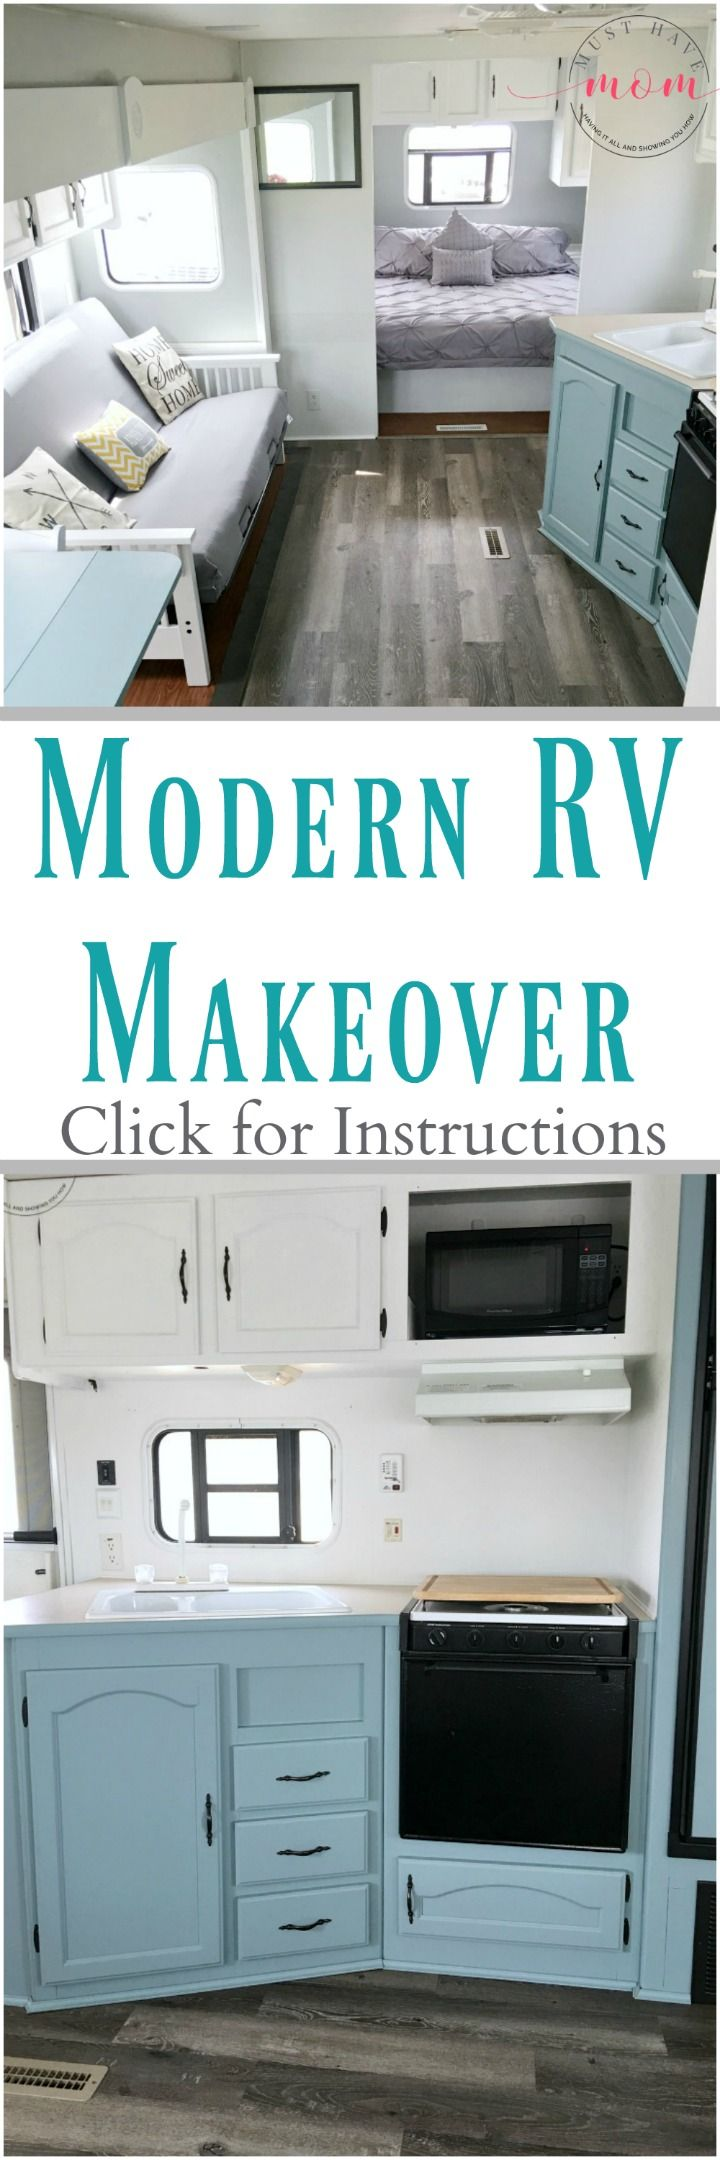 Easy RV Makeover design with instructions to remodel RV interior, paint RV walls, paint 2 tone kitchen cabinets idea! LOVE this airy space!!